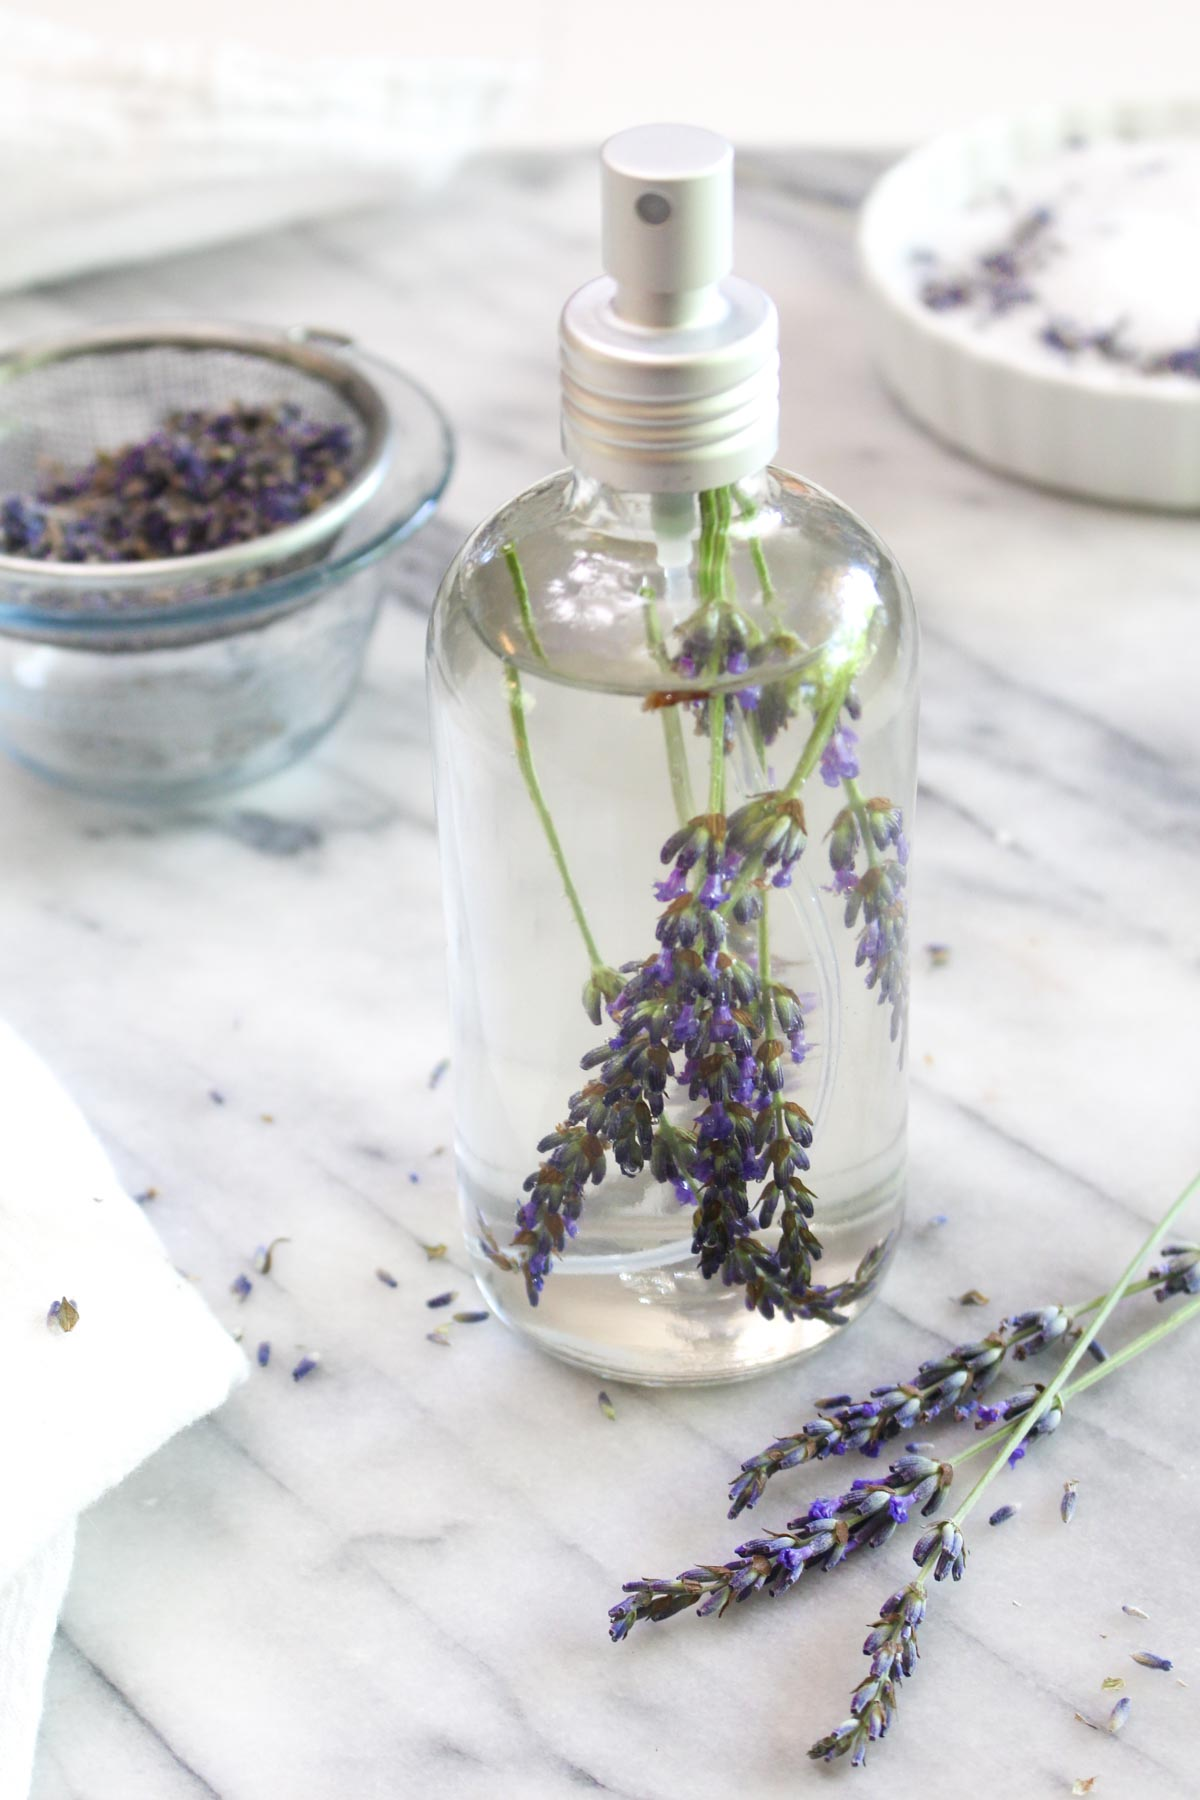 Lavender Linen Spray and Bath Soak are easy DIY recipes that can promote relaxation, reduce stress, and promote restful sleep. | CatchingSeeds.com